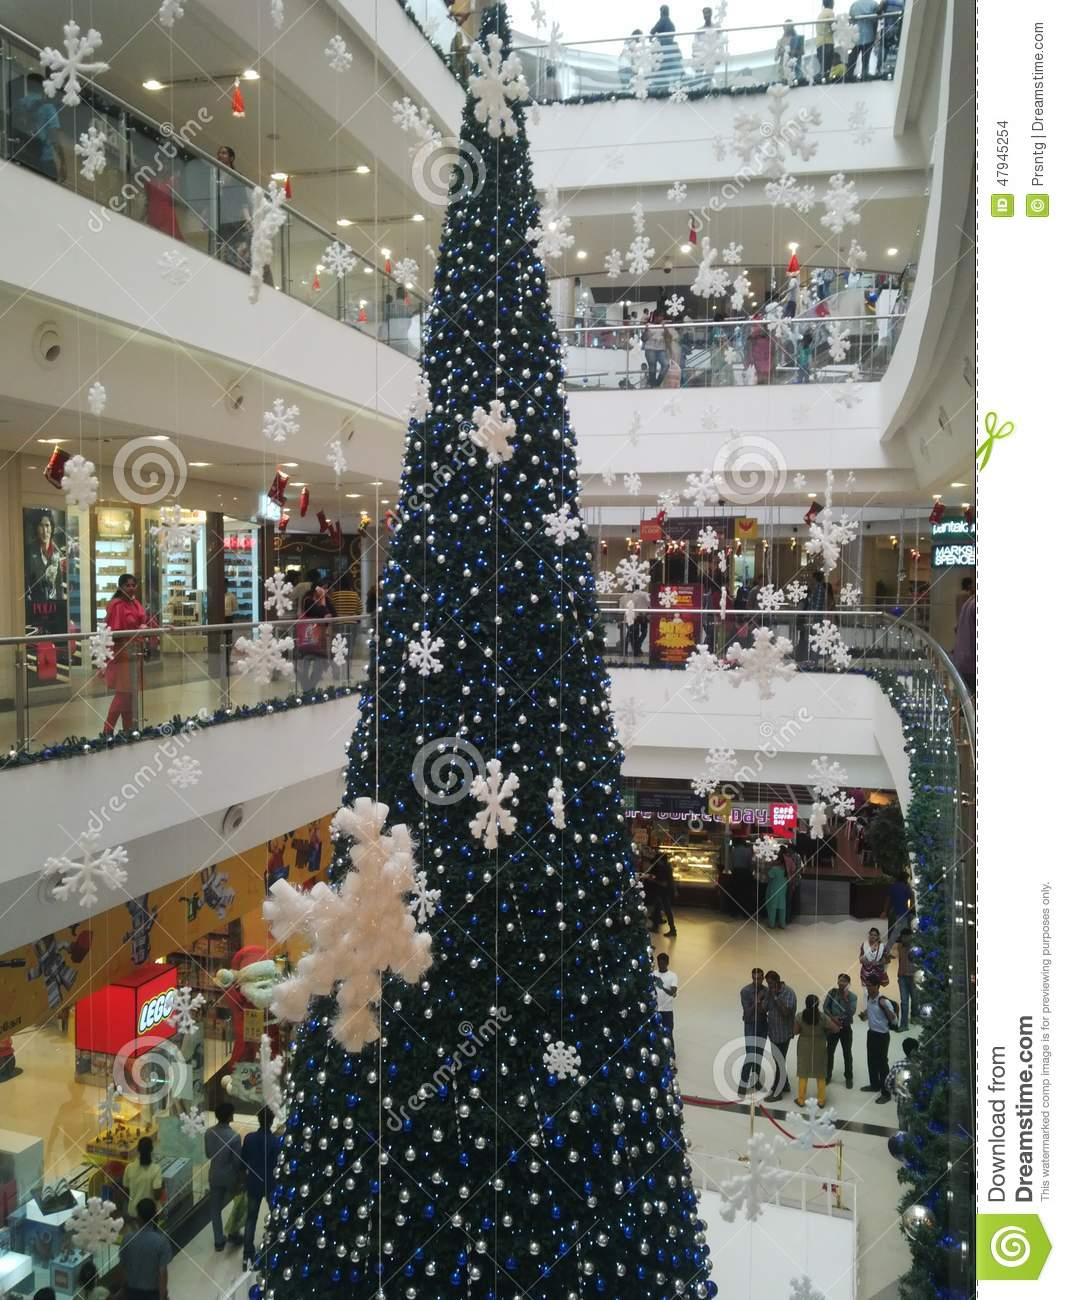 Christmas Decorations In Shopping Malls: Christmas Decoration Shopping Mall Stock Images